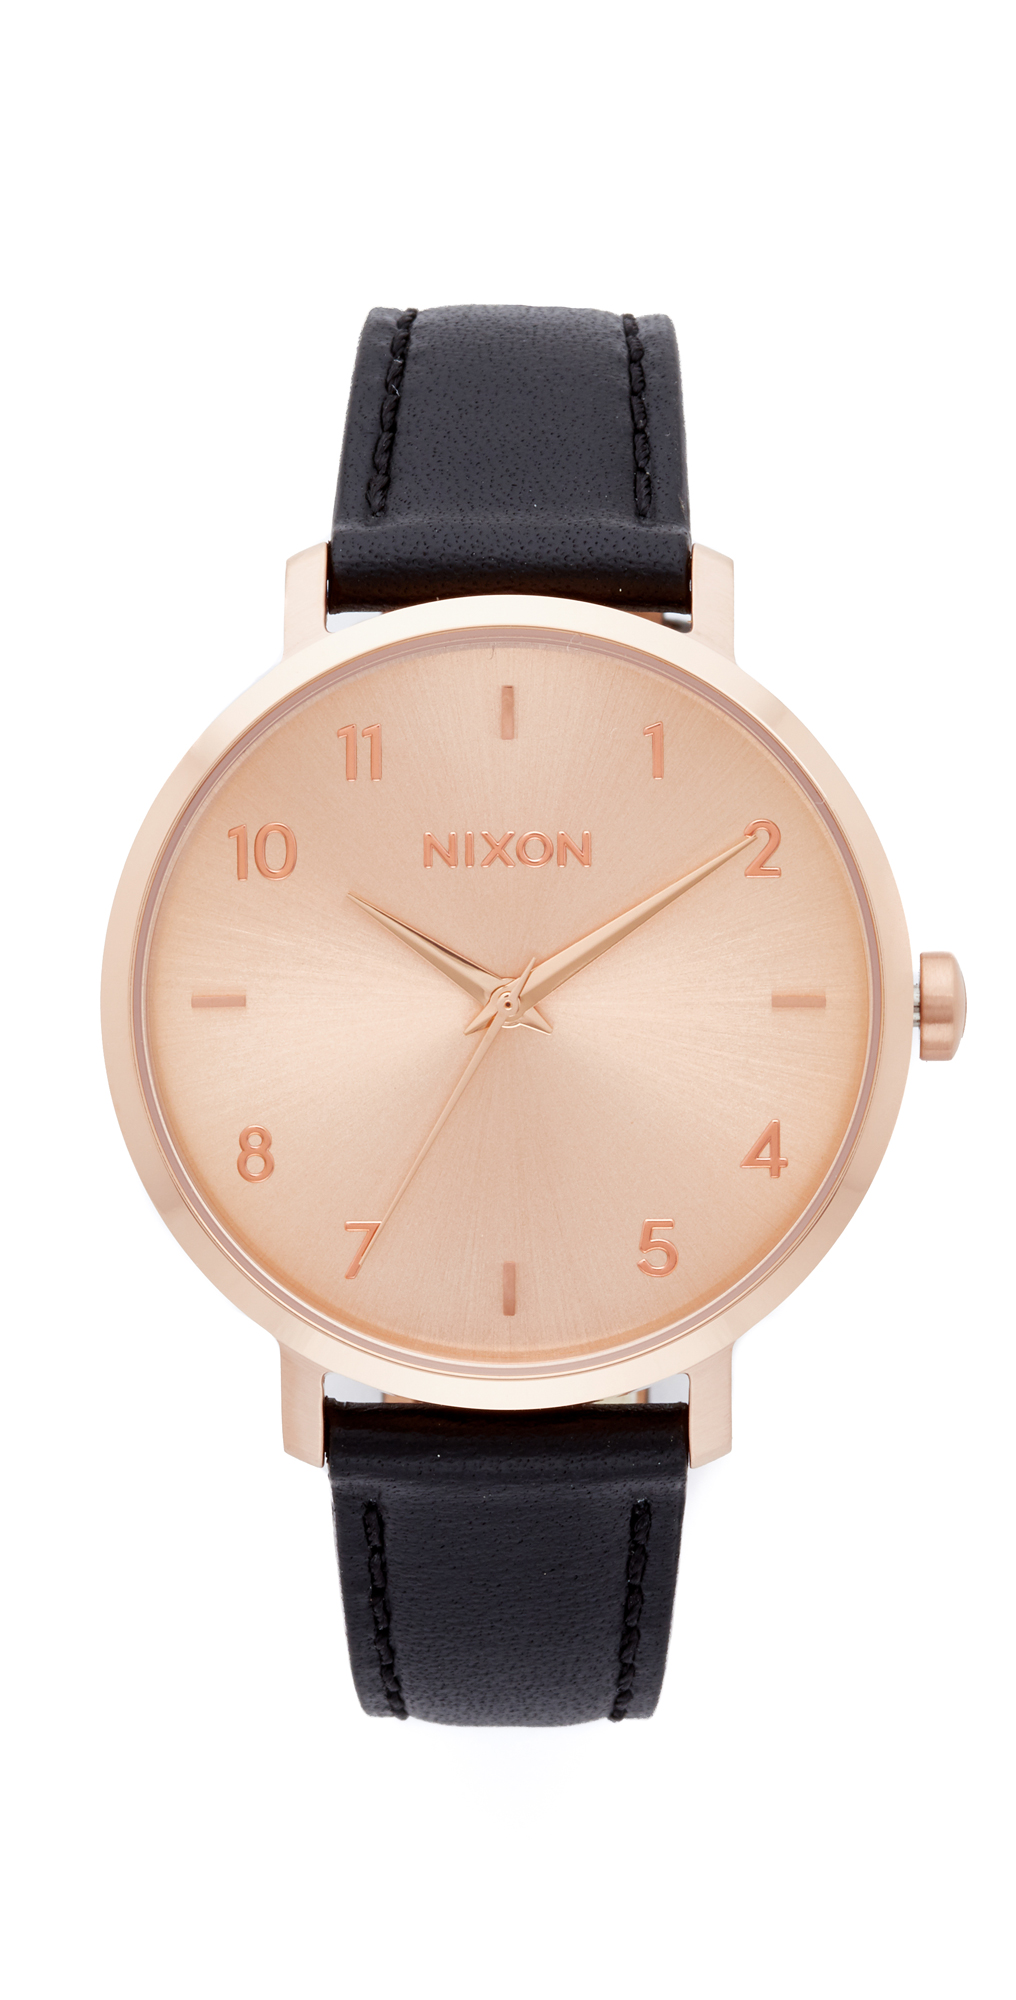 The Arrow Leather Watch Nixon